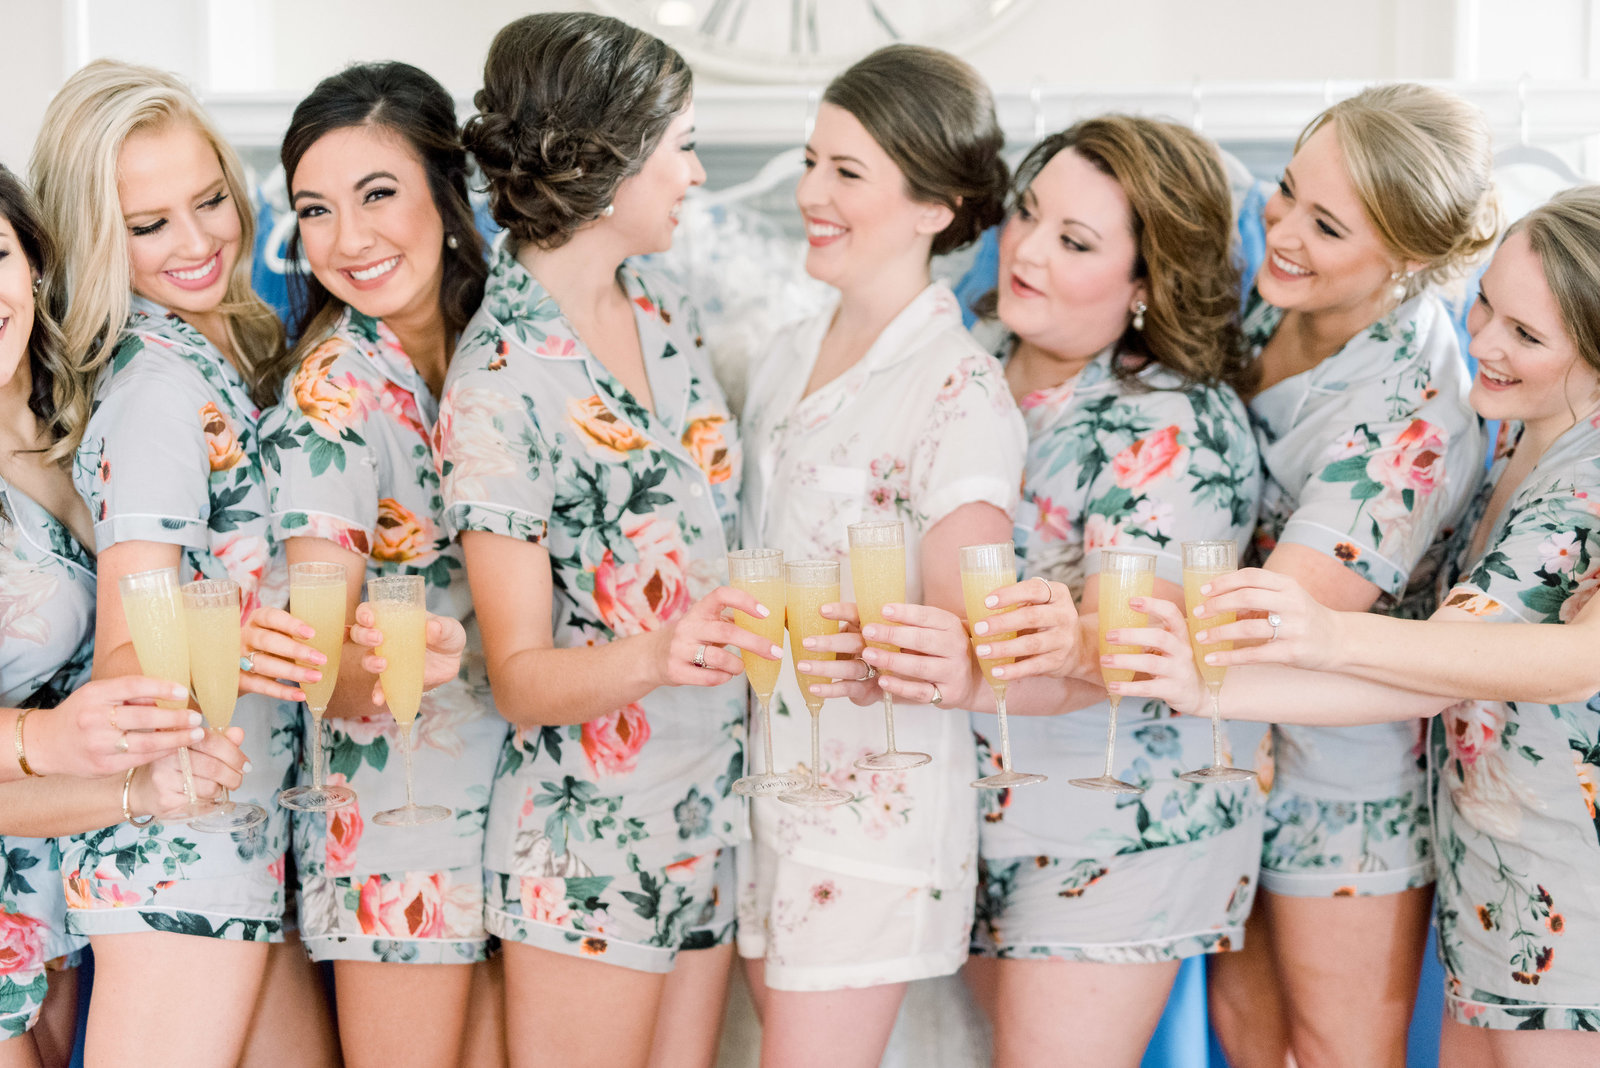 southern-blue-virginia-wedding-bridesmaids-robes-champagne-photo480